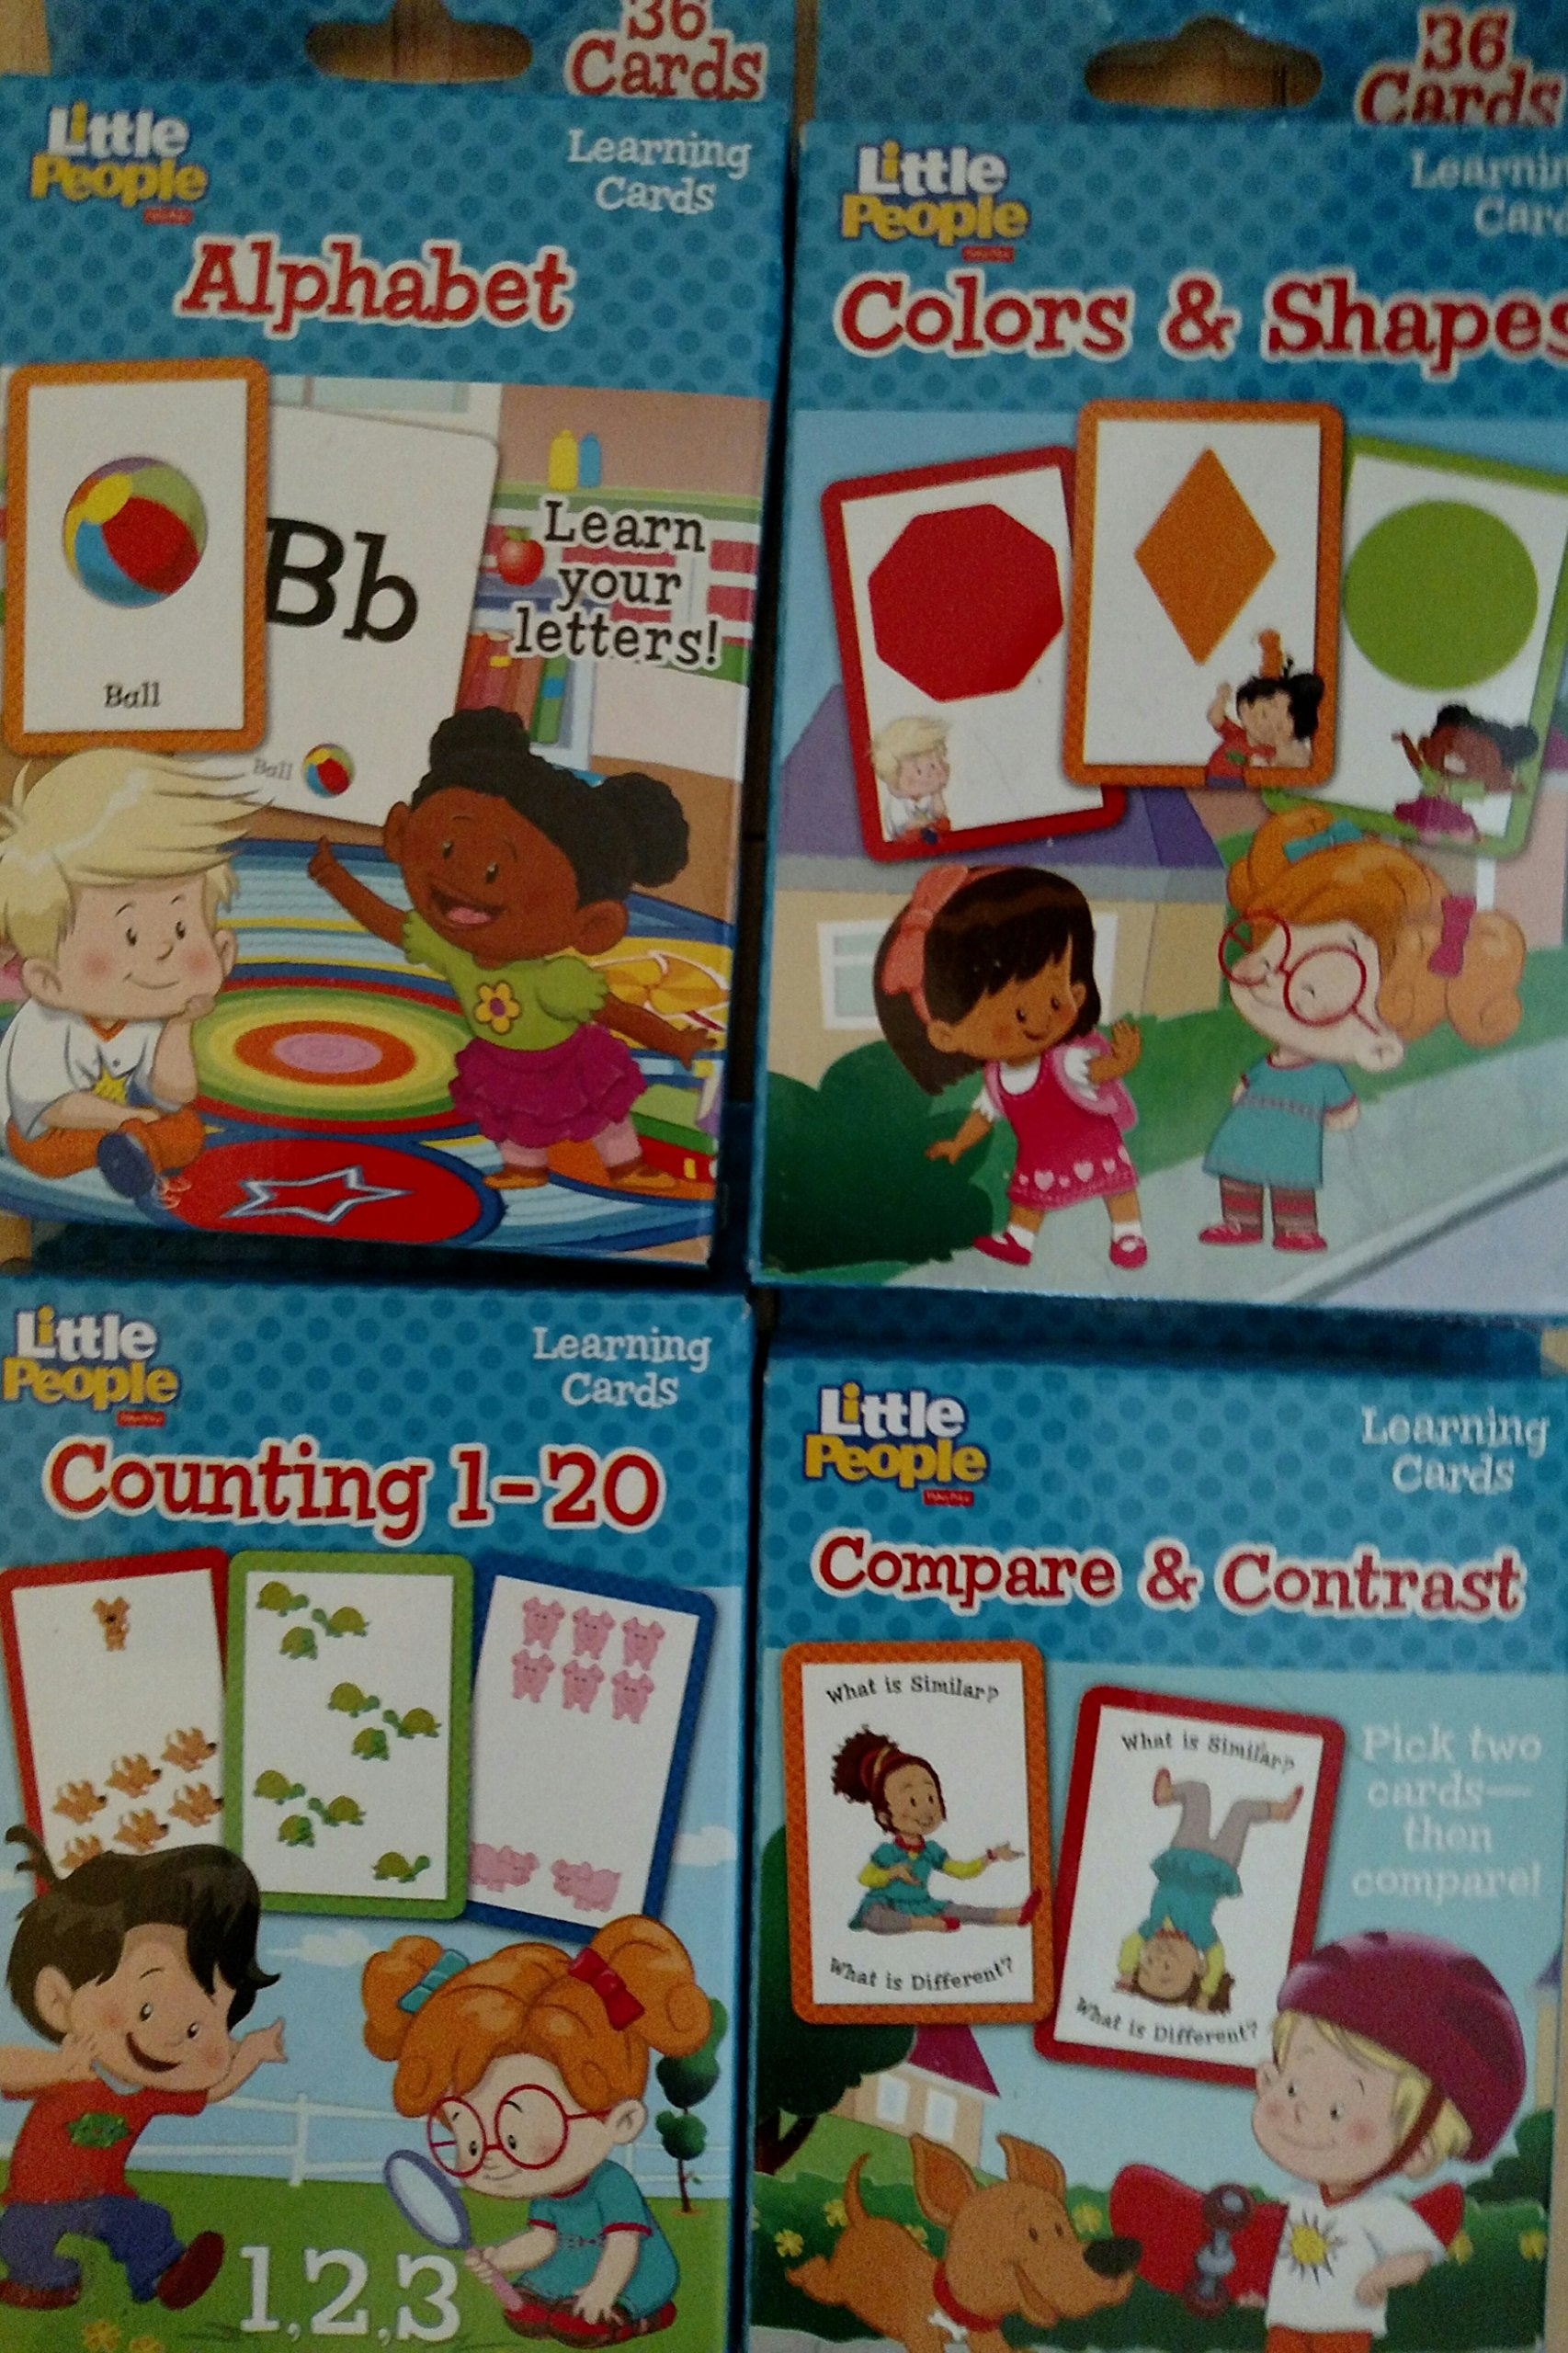 Fisher-Price Little People Alphabet, Colors & Shapes, Compare & Contrast, & Counting 1-20 Learning Cards PDF ePub fb2 book